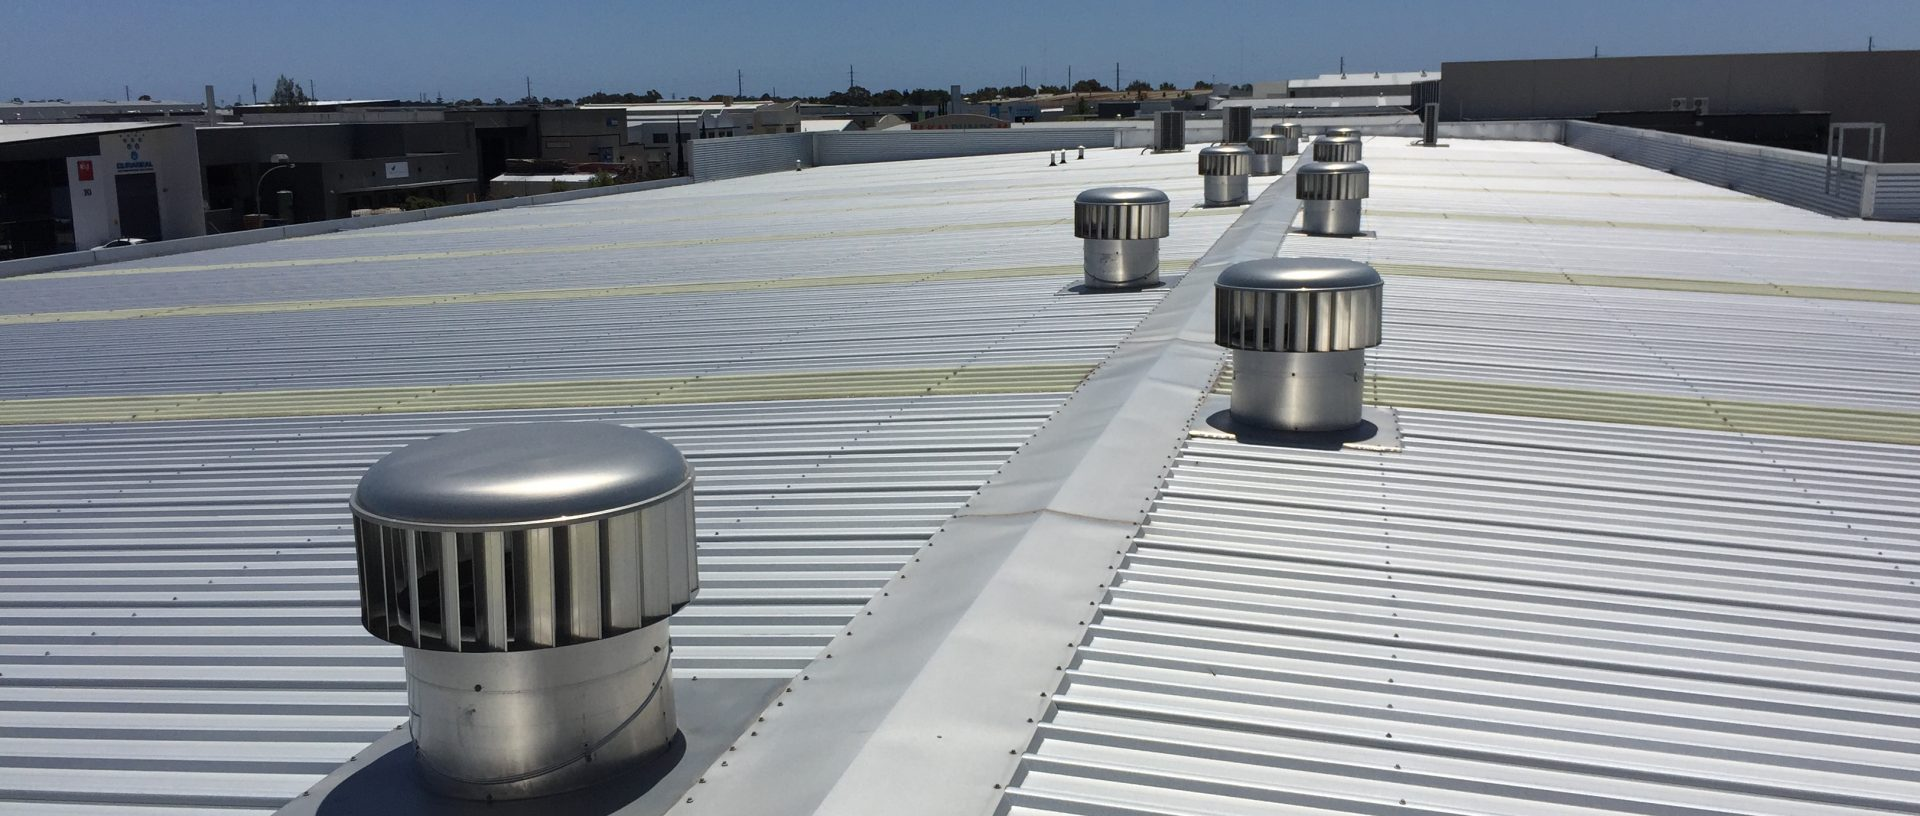 Wa Whirlybirds Industrial Ventilation Industrial